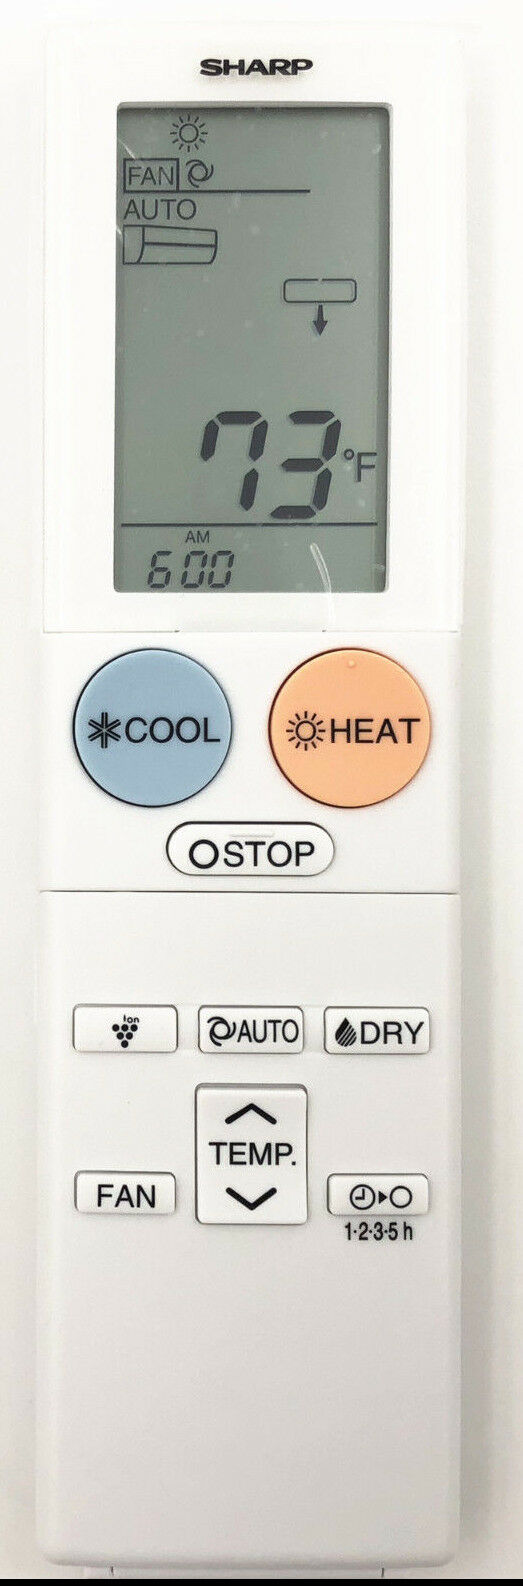 ORIGINAL SHARP AIR CONDITIONER REMOTE CONTROL  CRMC-A960JBEZ - AY-XP12THU AY-XP18THU